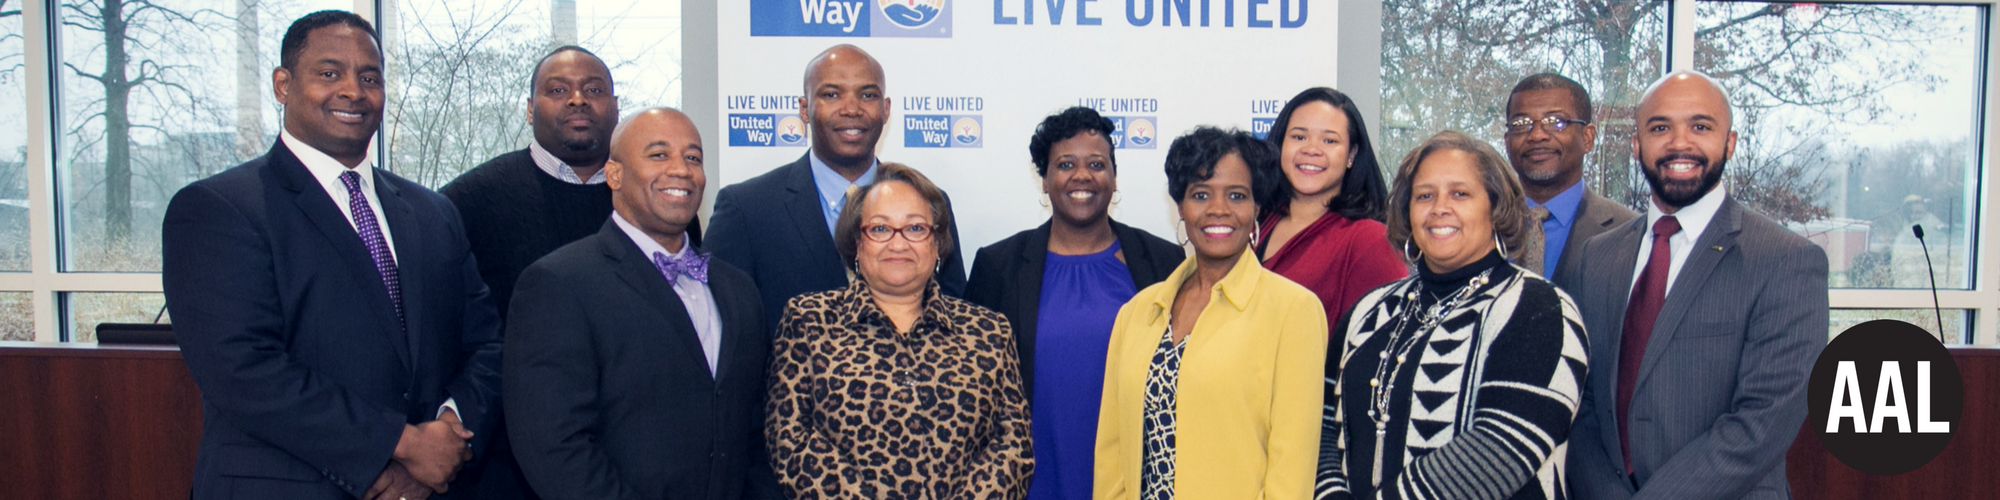 African American Leadership | United Way of Greater Greensboro